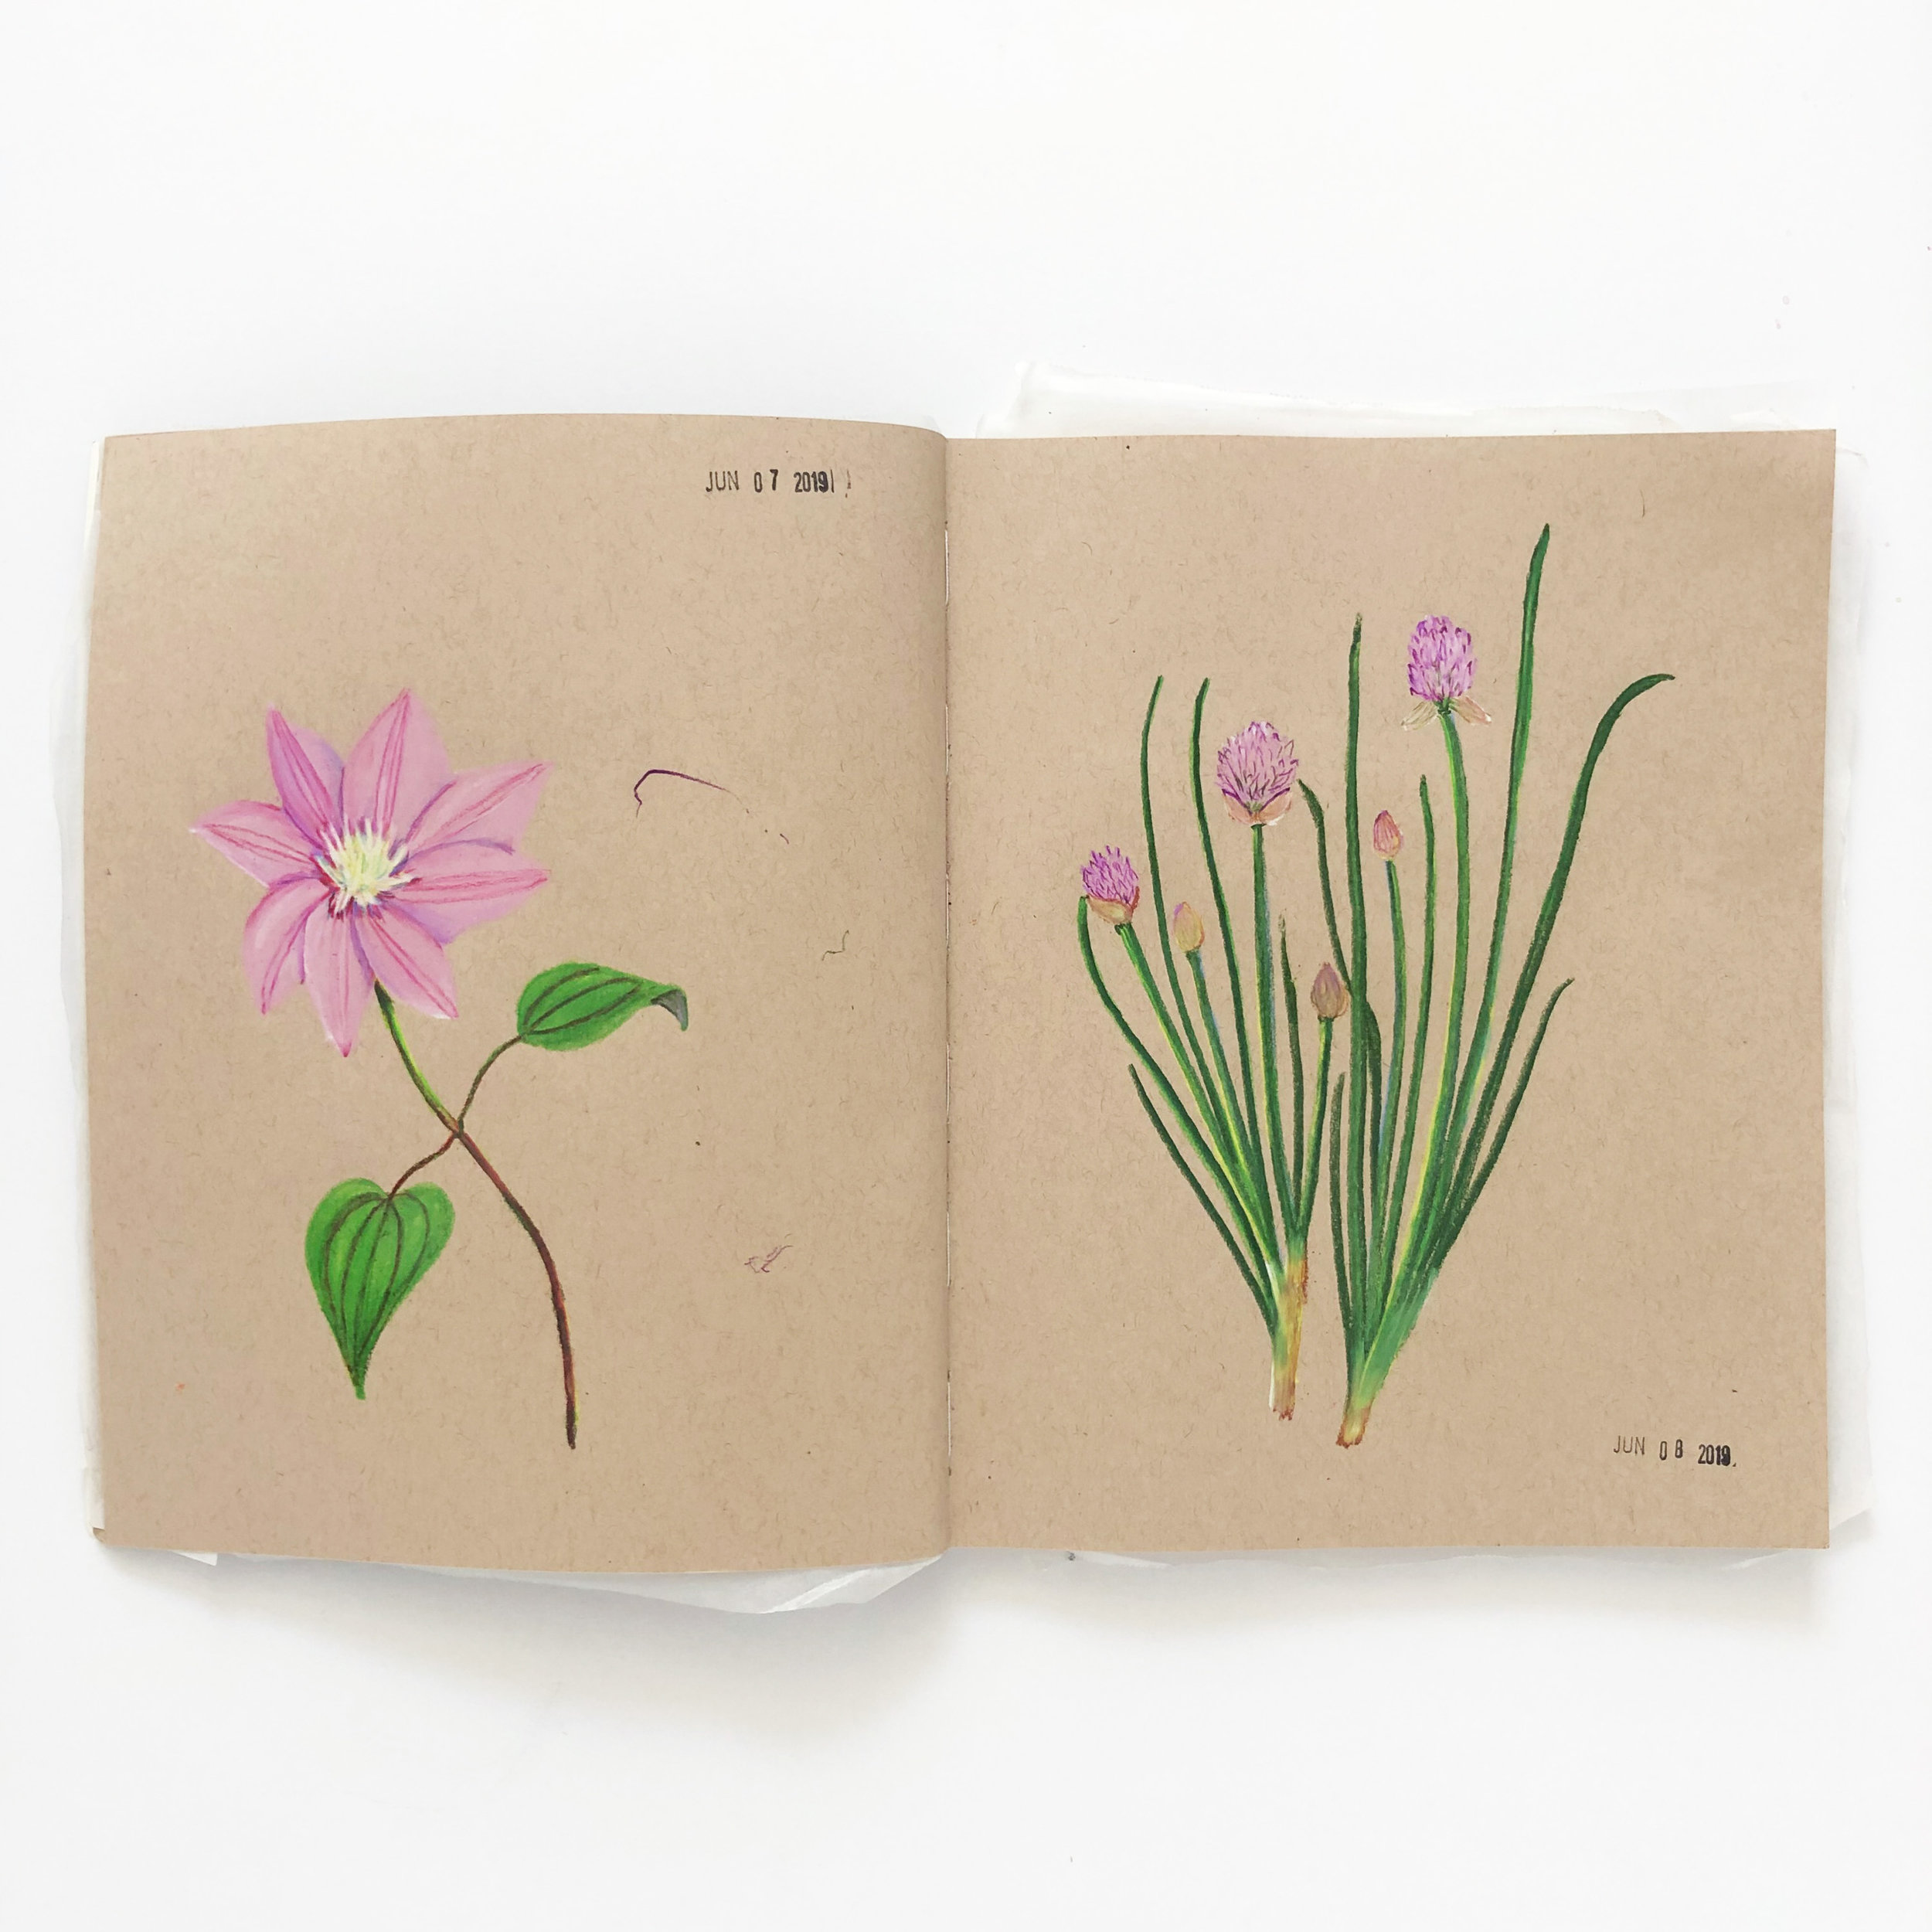 A Peek Inside Anne Butera's Colored Pencil Sketchbook with Sketches of Clematis and Chives